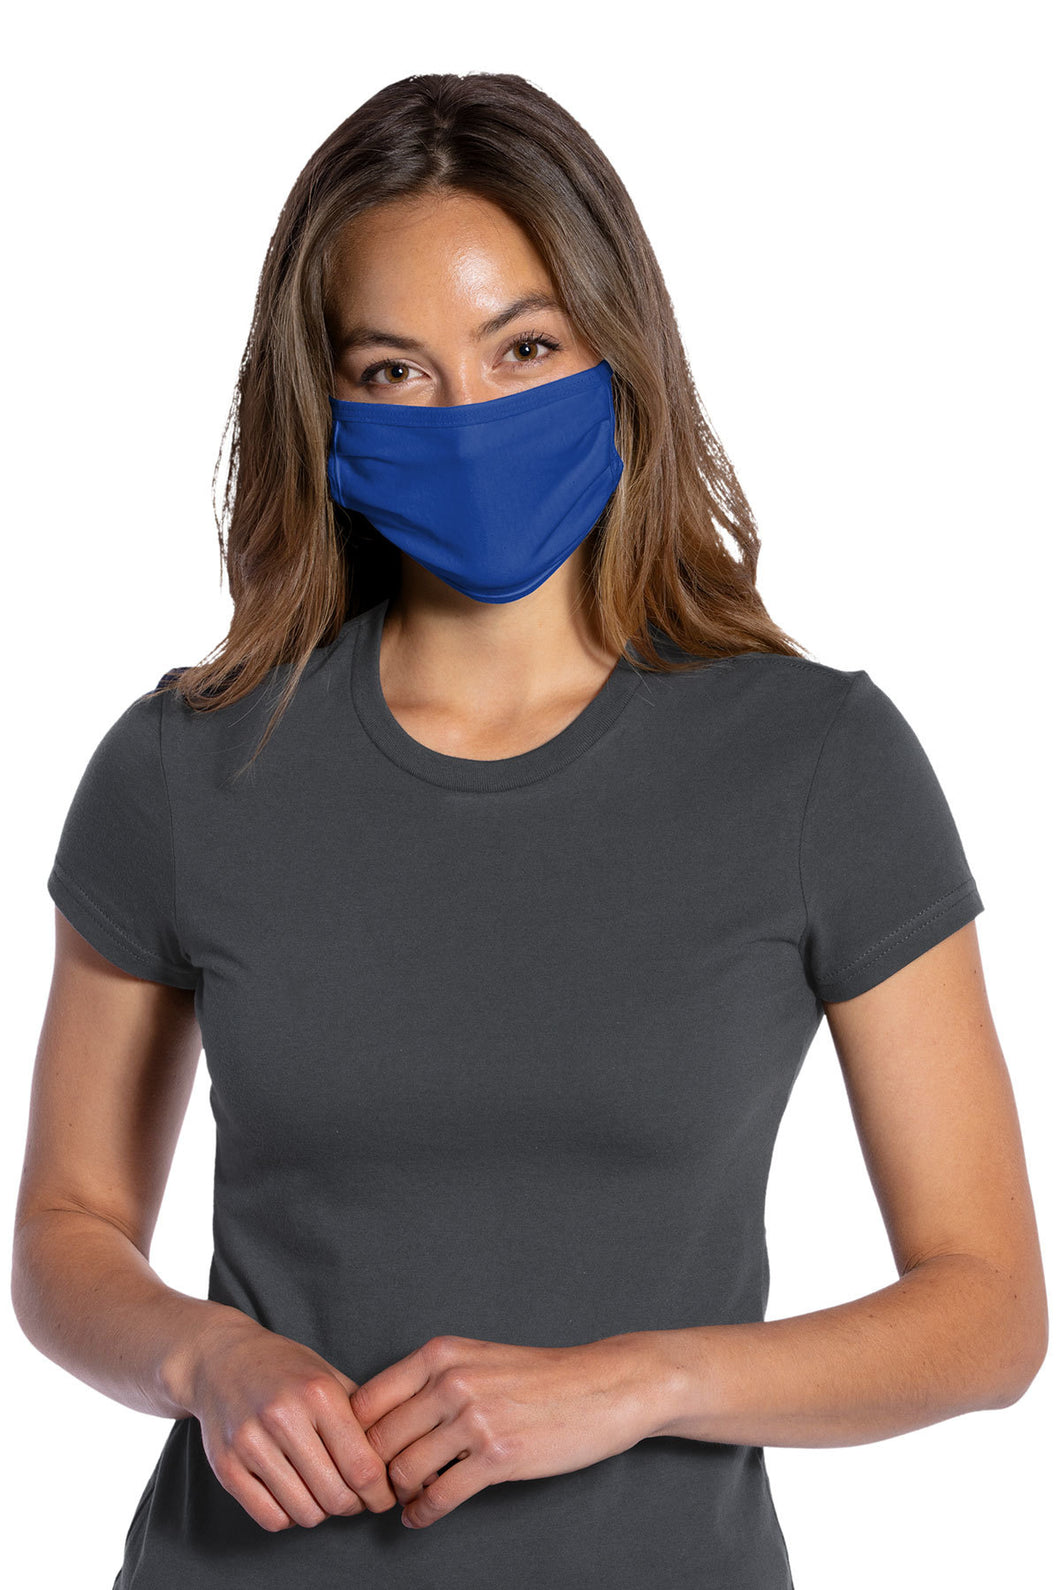 Cotton Mask (500 Quantity Minimum) 1-color imprint